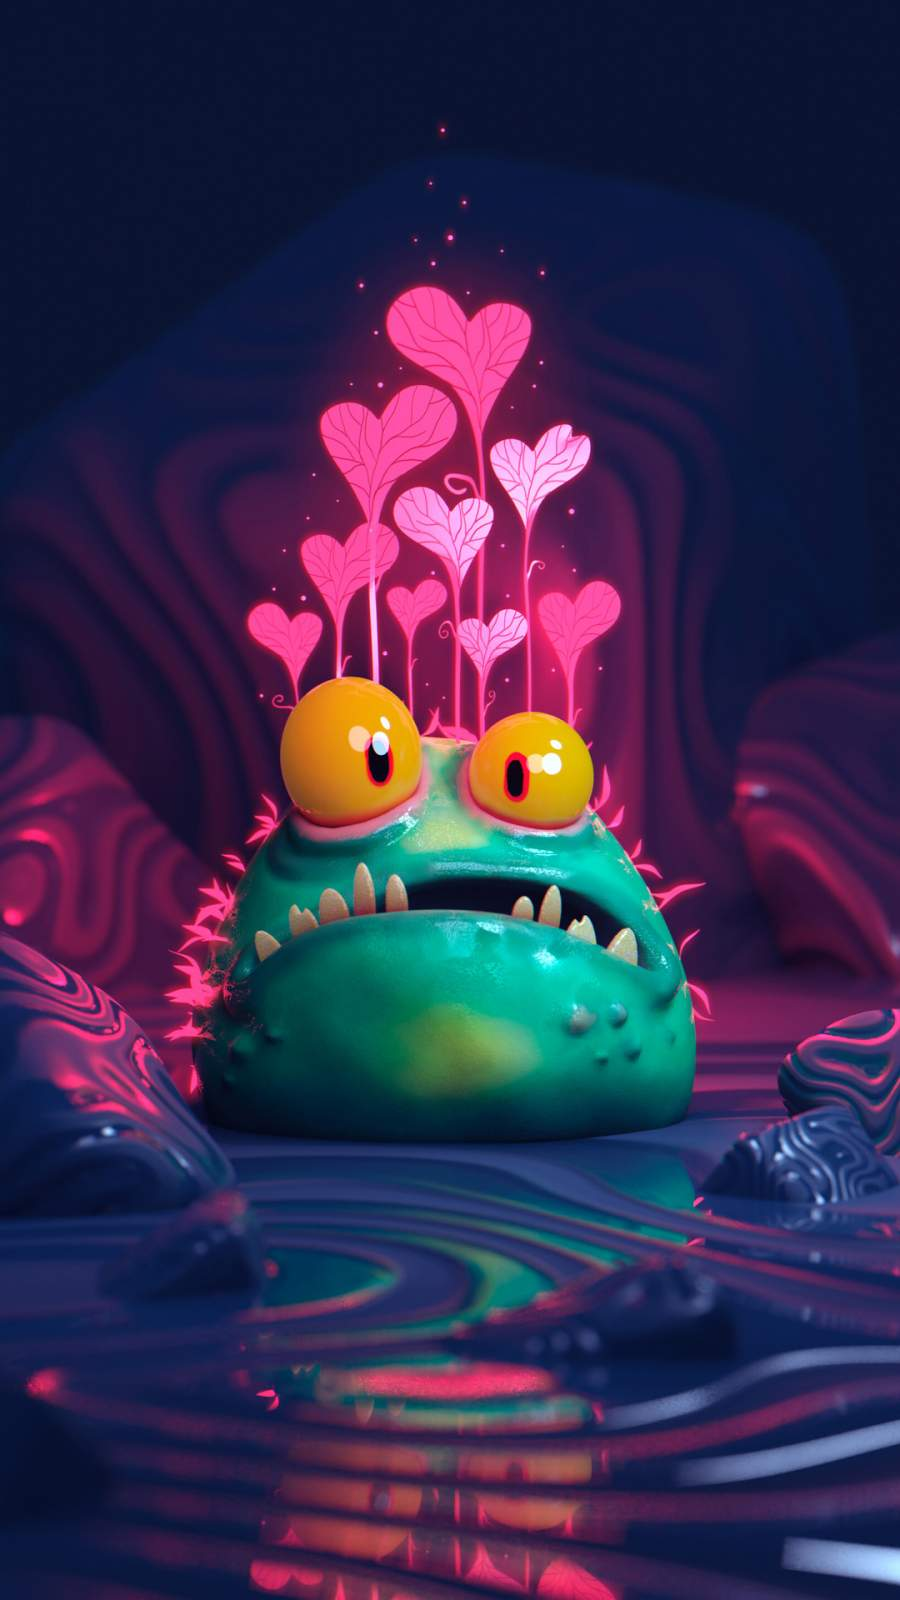 Cute Monster iPhone Wallpaper